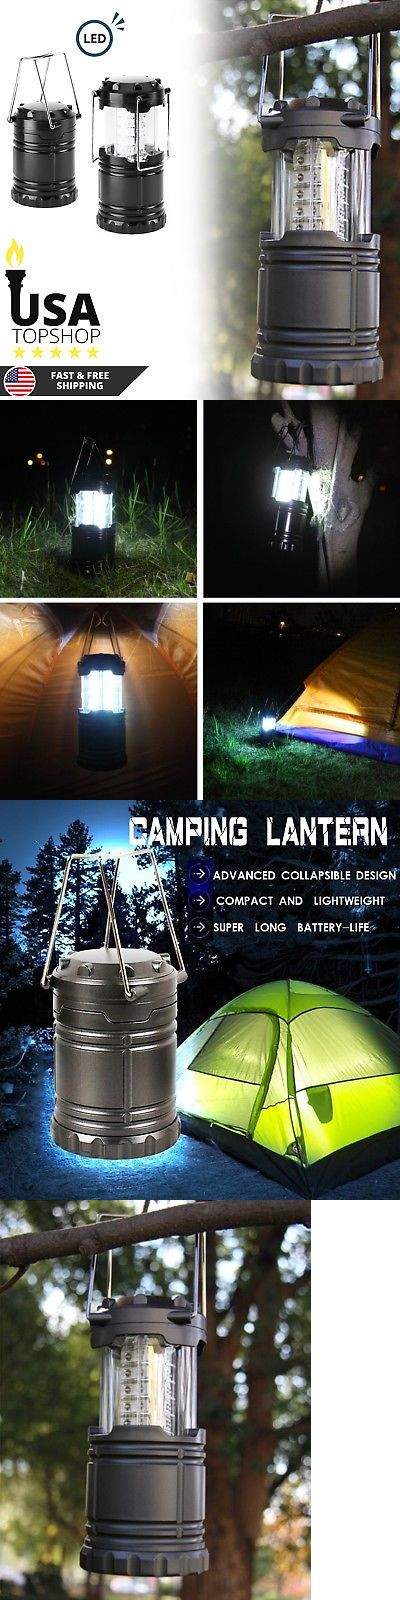 Lanterns 168867: Tac Light Lantern Swat 600 Lumens Bright High Beam Emergency Portable Lamps 3Pk -> BUY IT NOW ONLY: $56.18 on eBay!